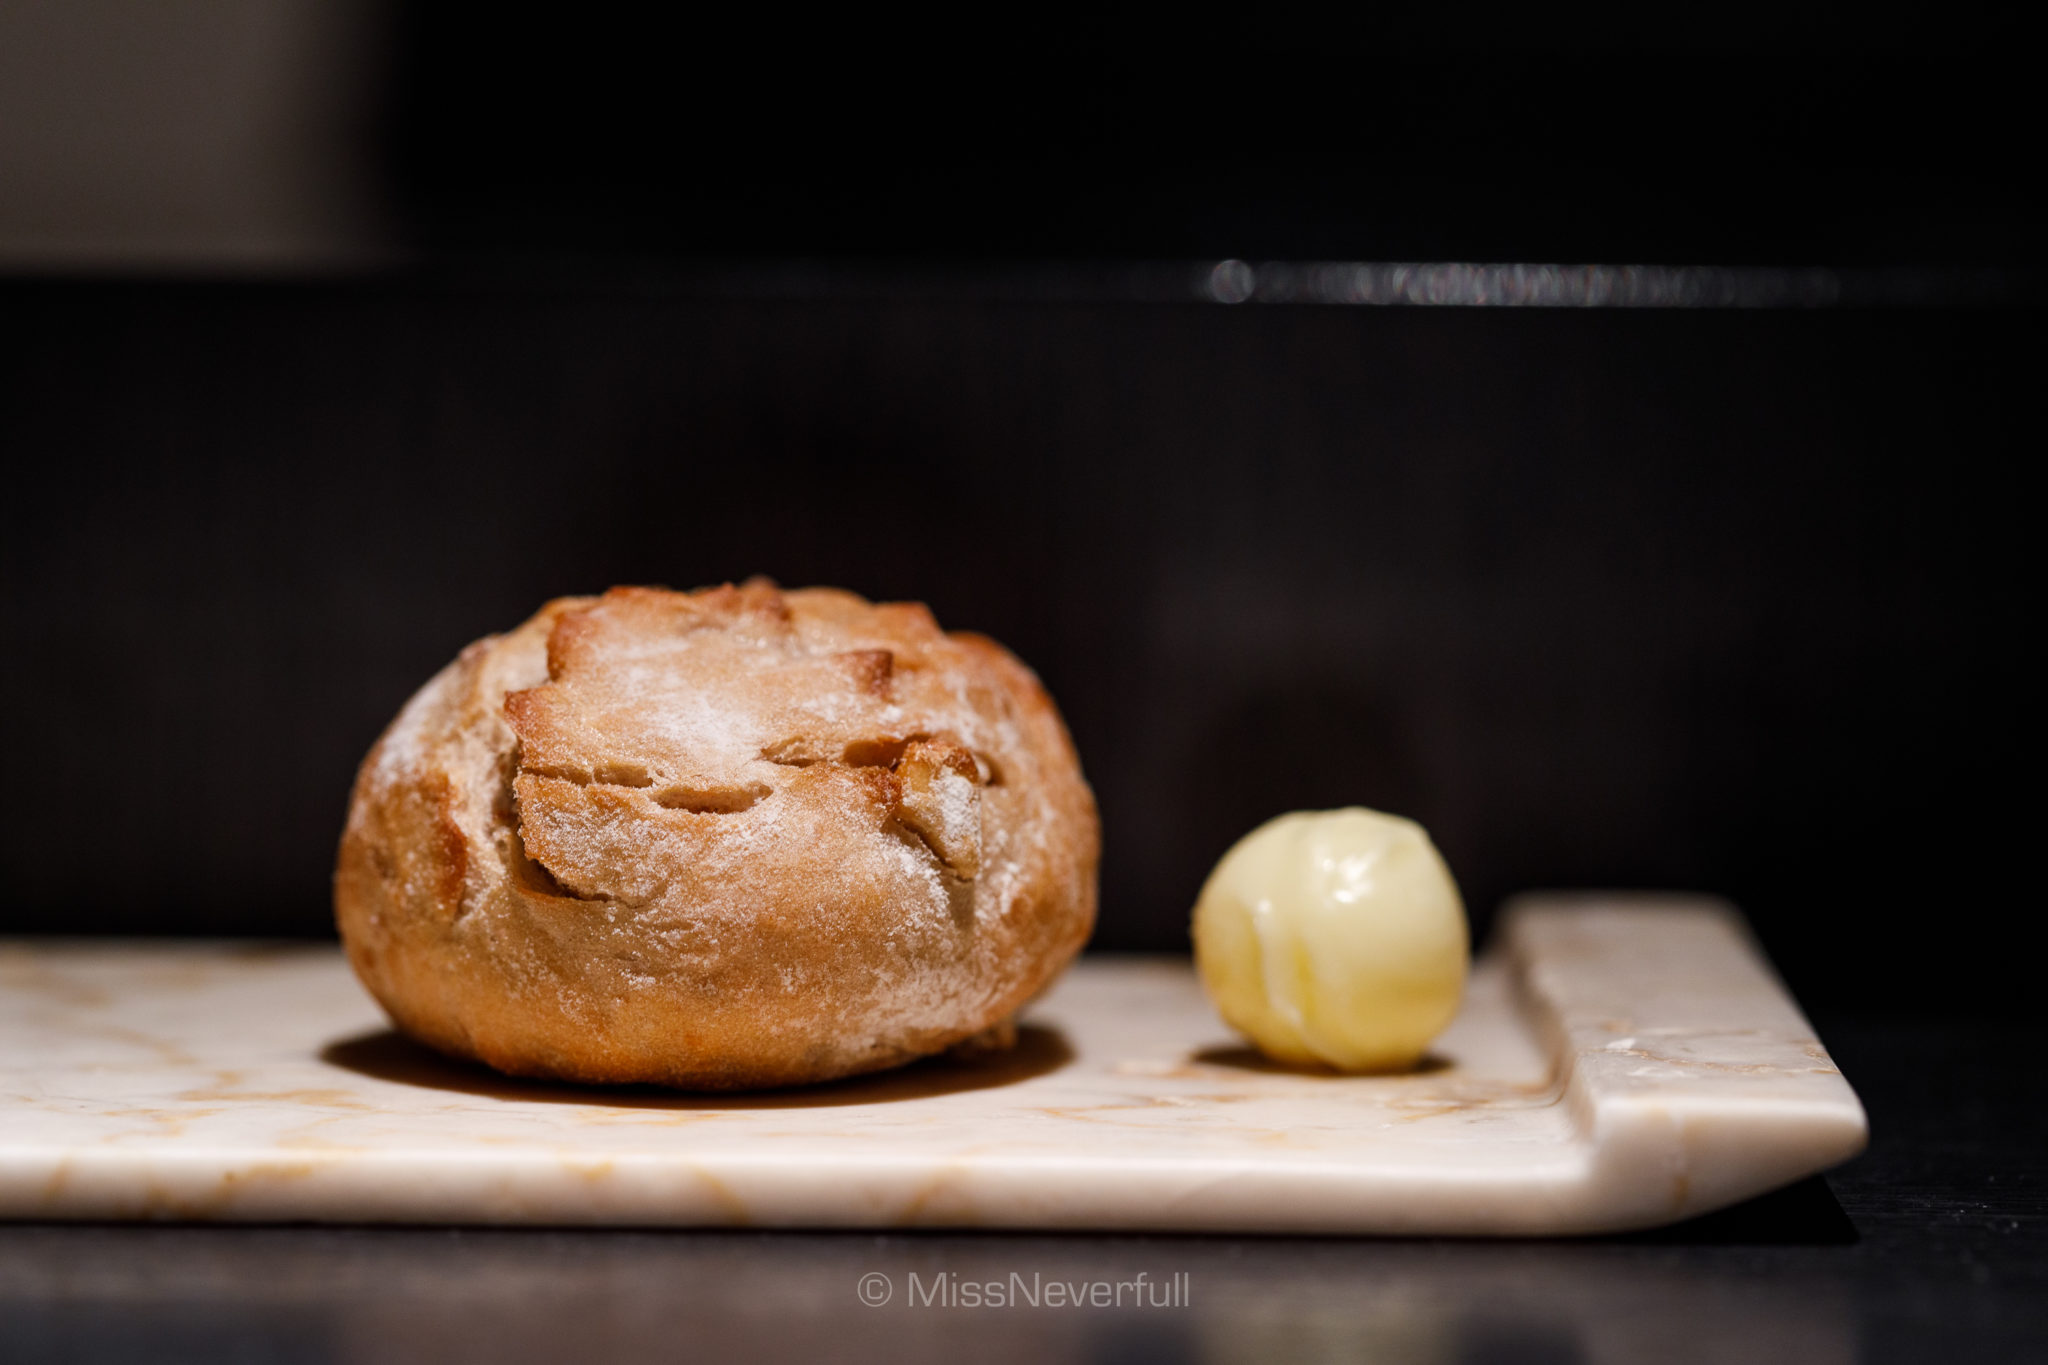 Homemade bread with butter